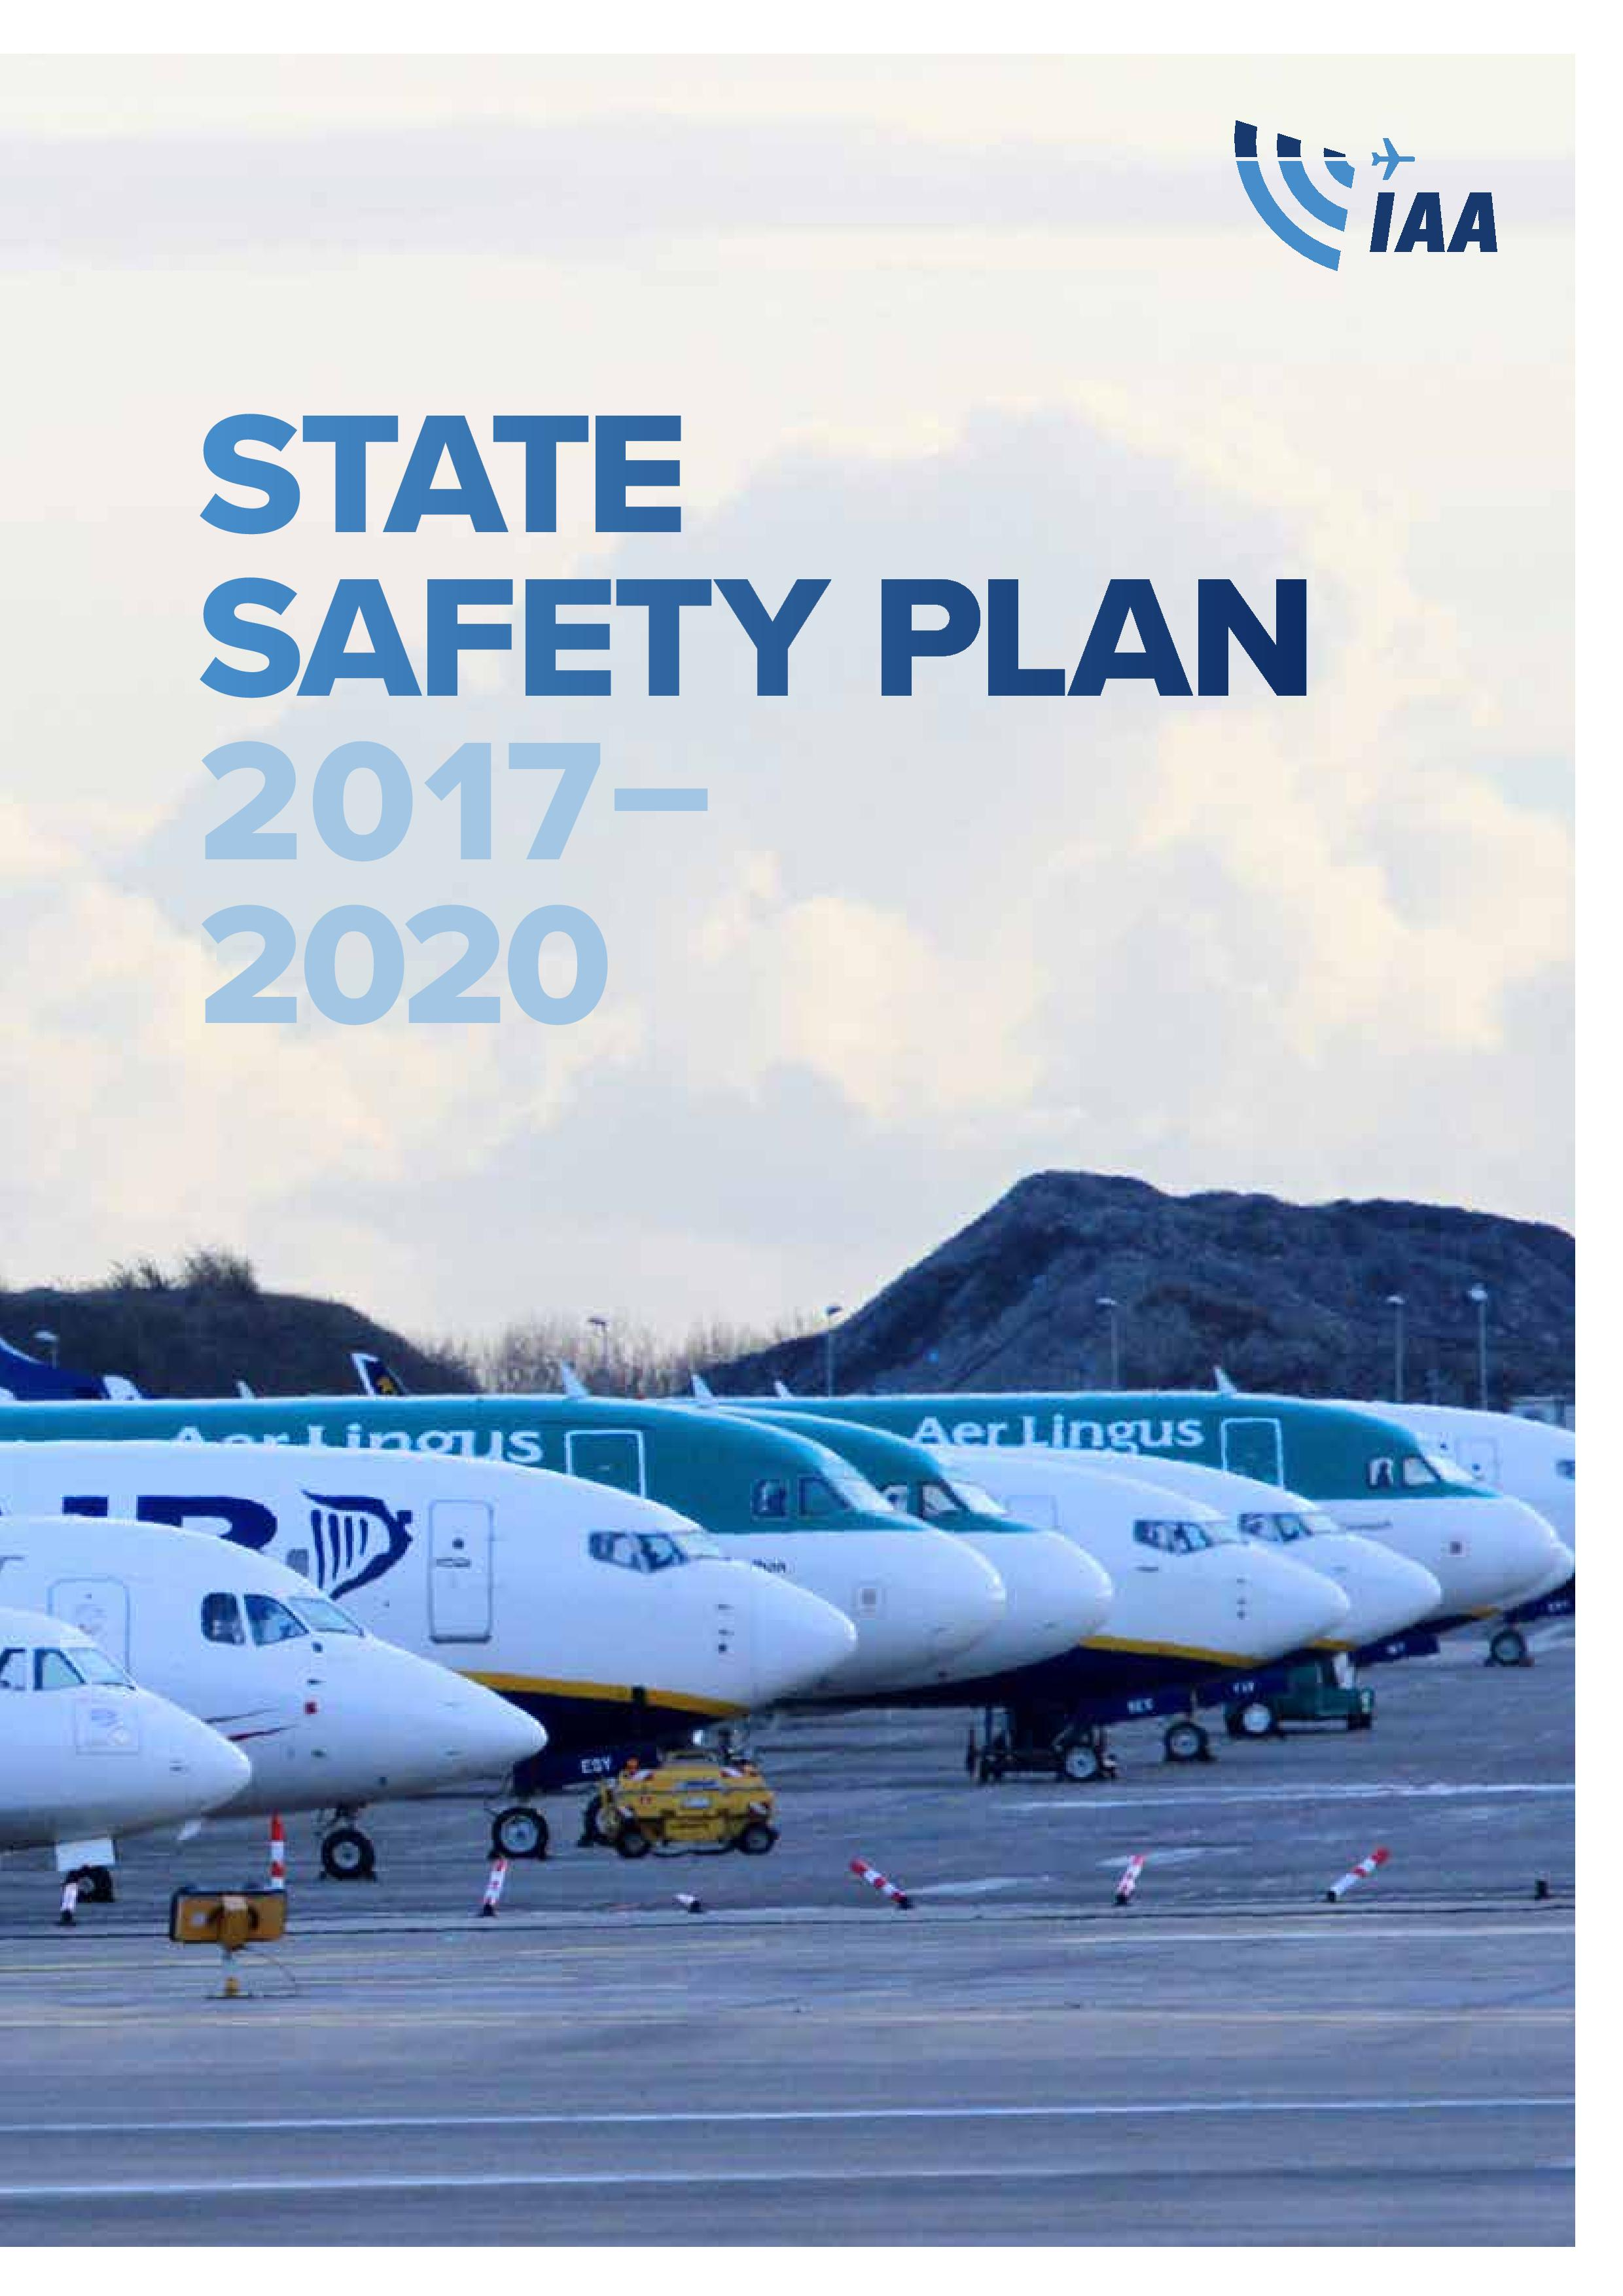 160730 IAA State Safety Plan 2017-2020 -page-001